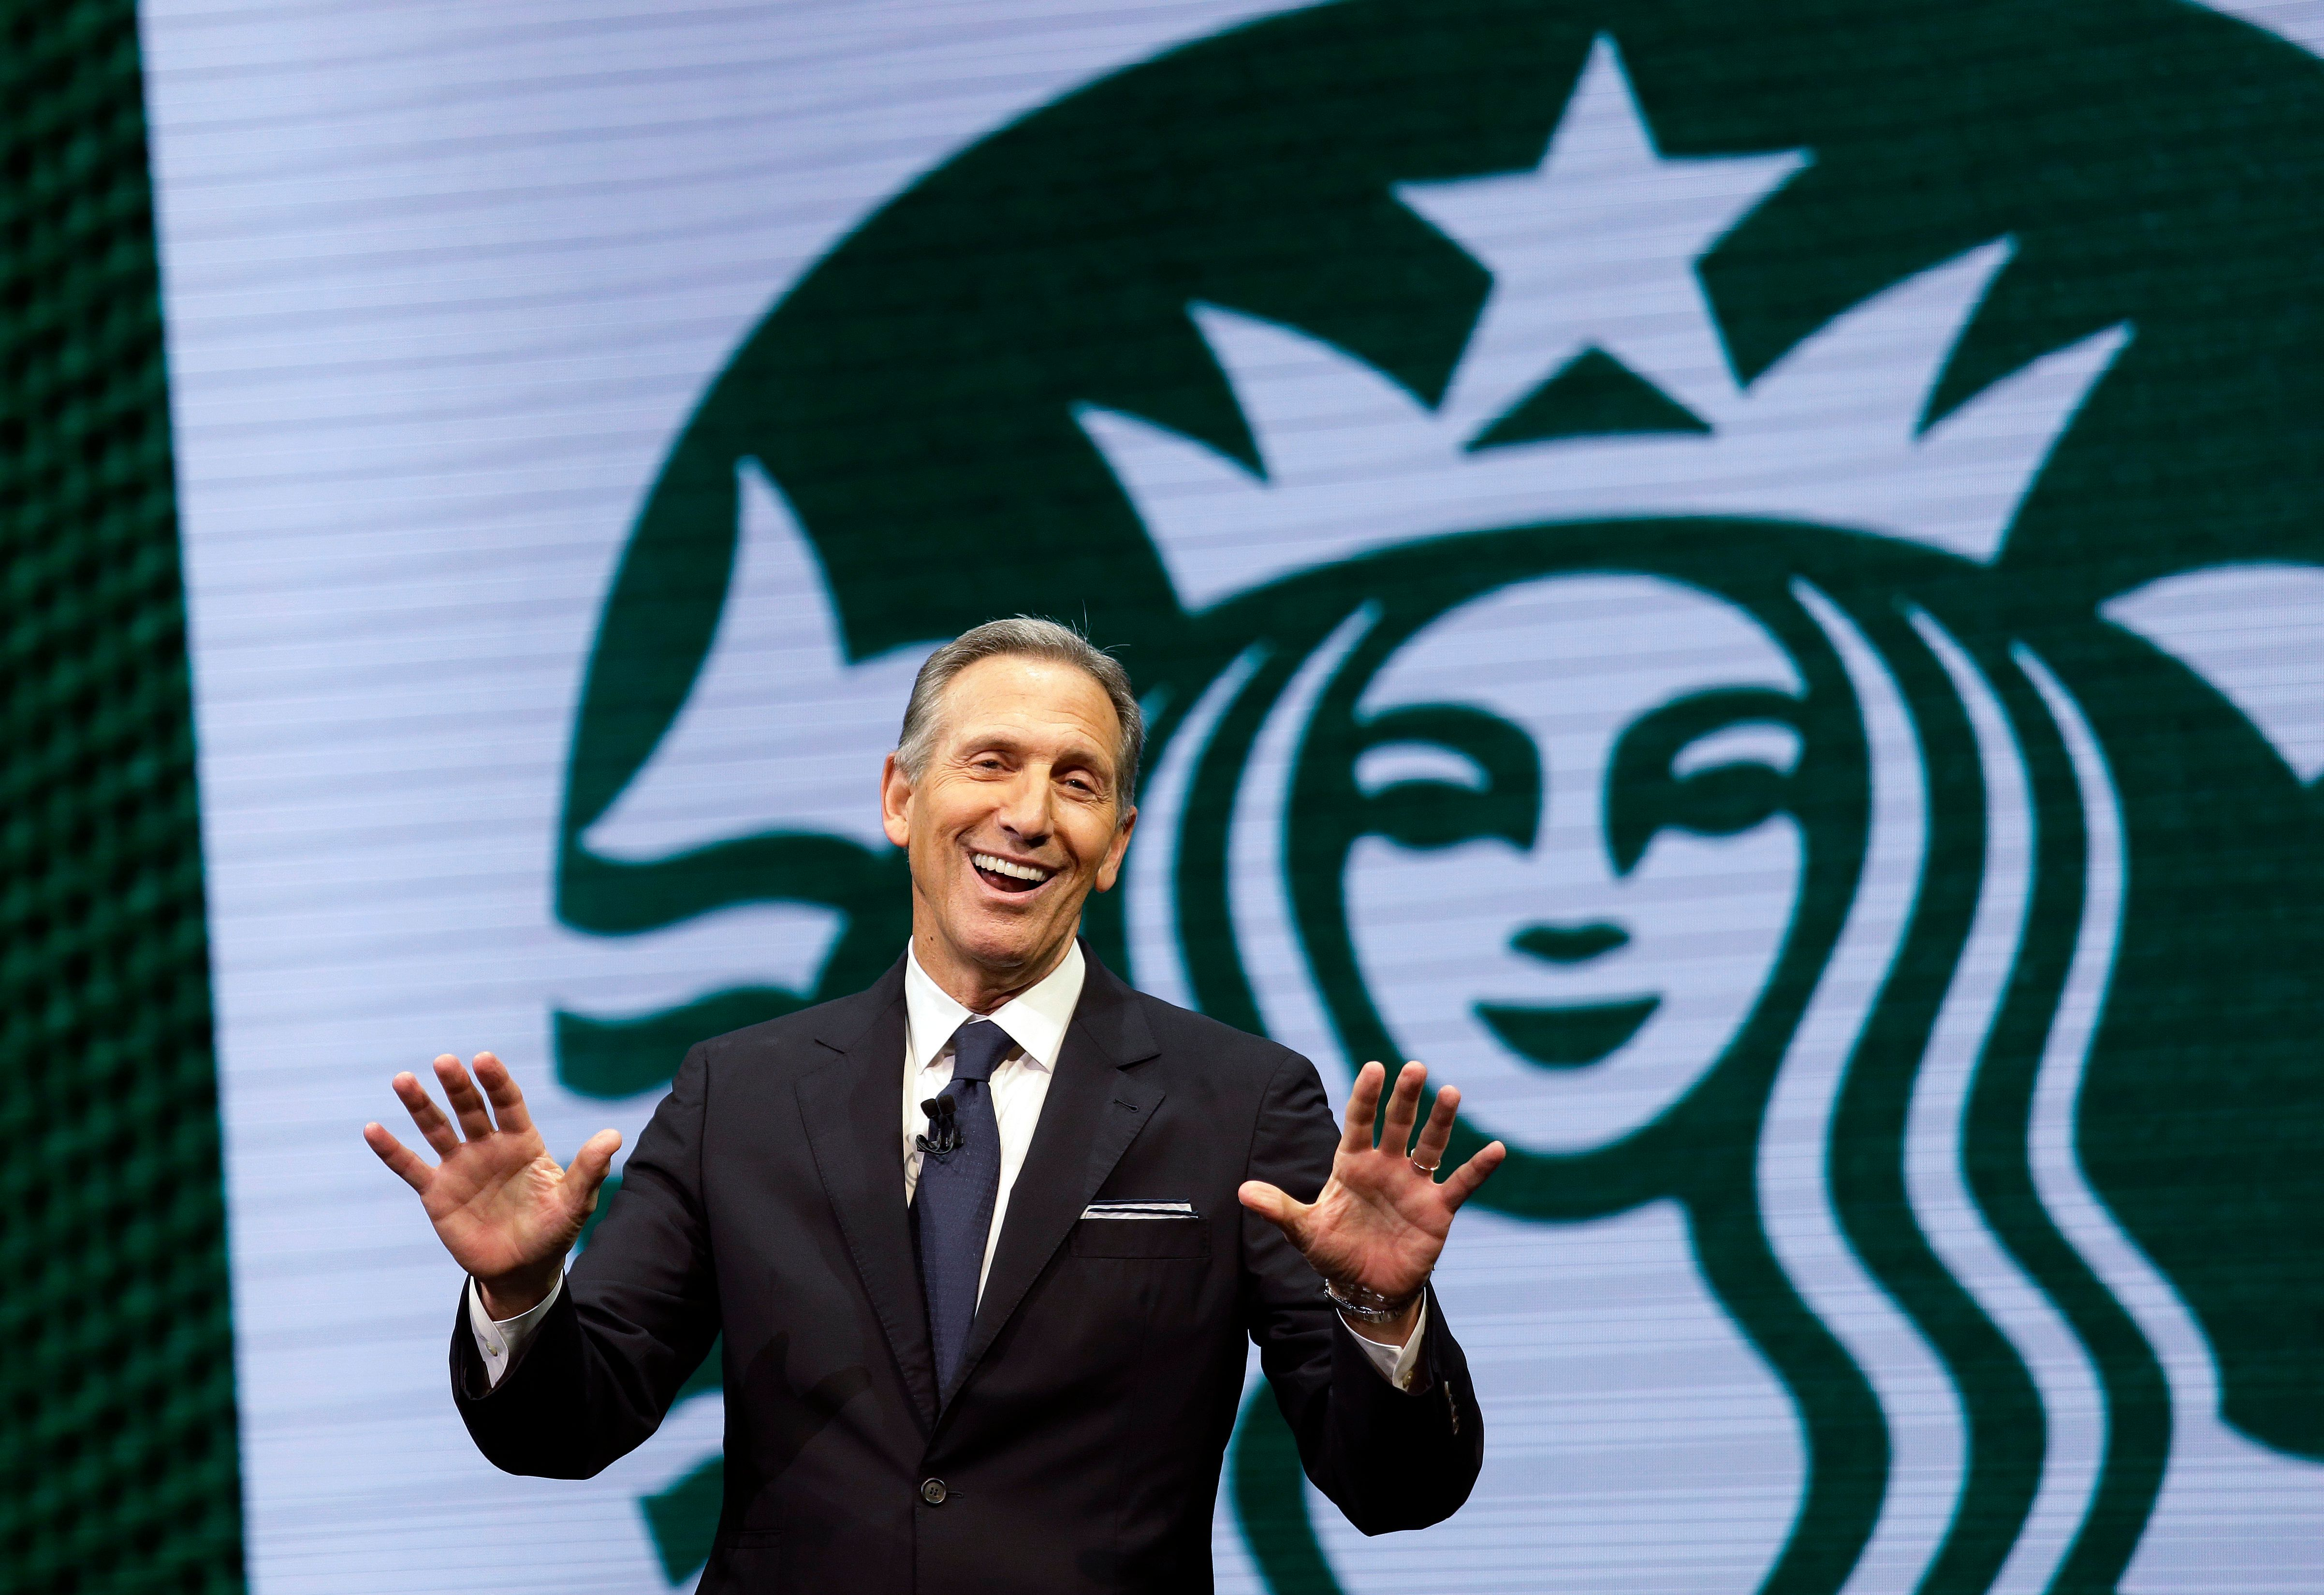 Starbucks CEO Howard Schultz speaks at the Starbucks annual shareholders meeting, Wednesday, March 22, 2017, in Seattle. (AP Photo/Elaine Thompson)